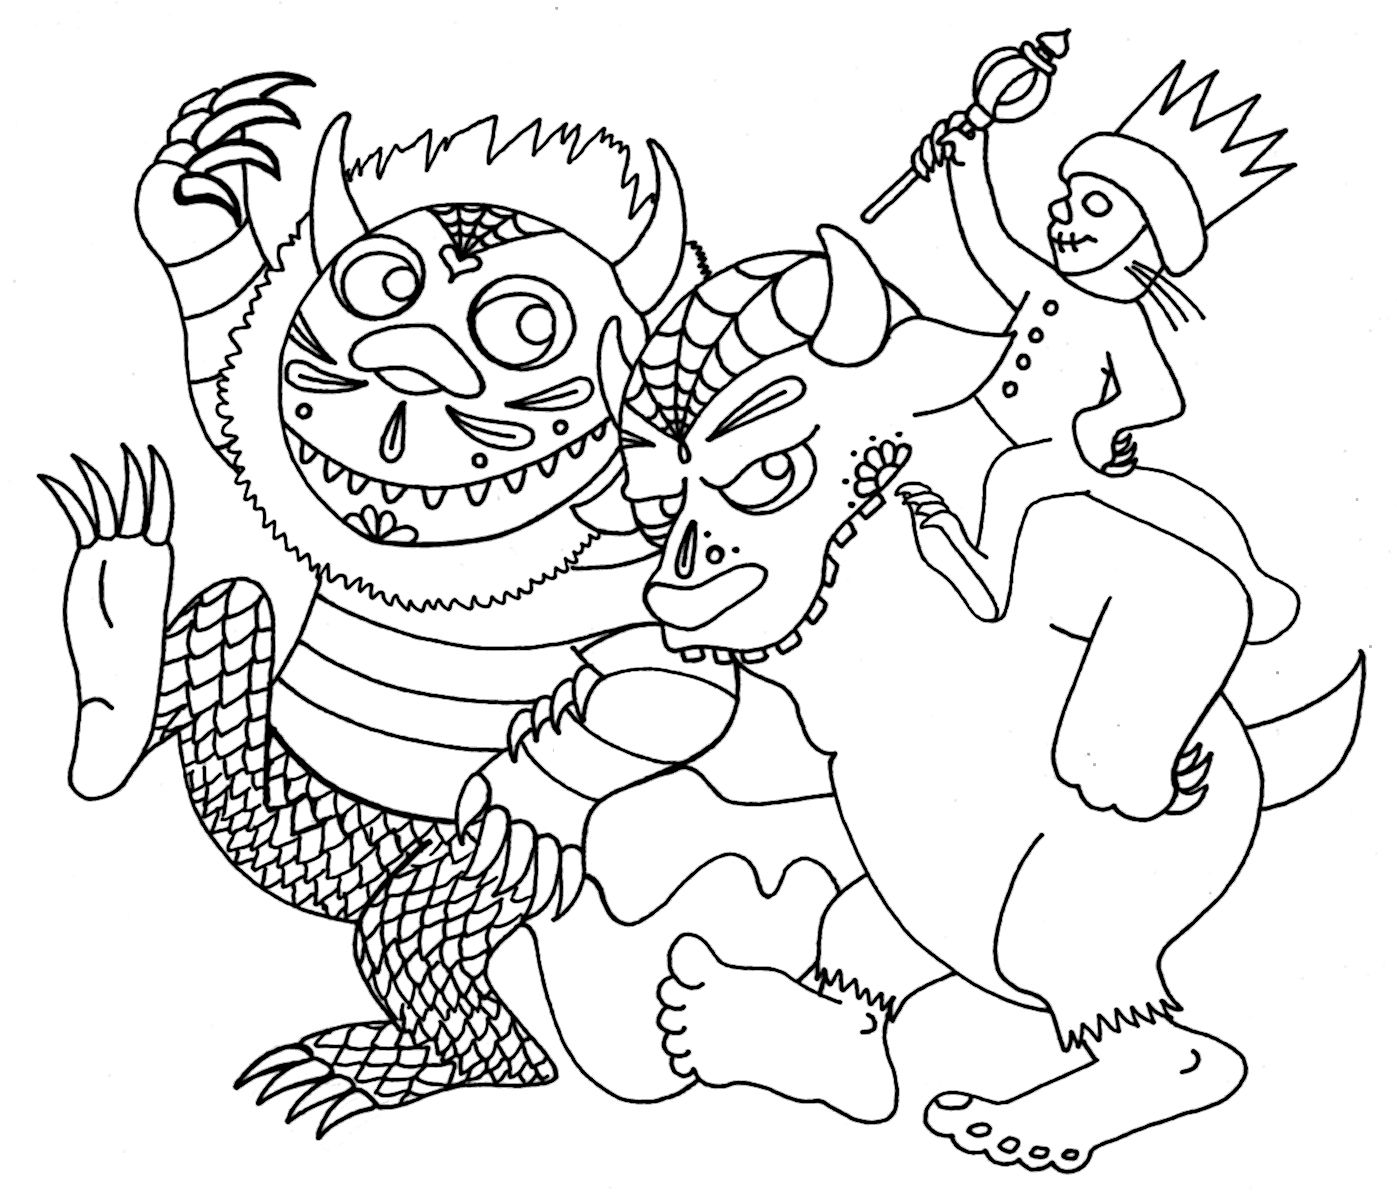 Yucca Flats N M Search Results For Where The Wild Things Are Coloring Pages Coloring Books Bear Coloring Pages